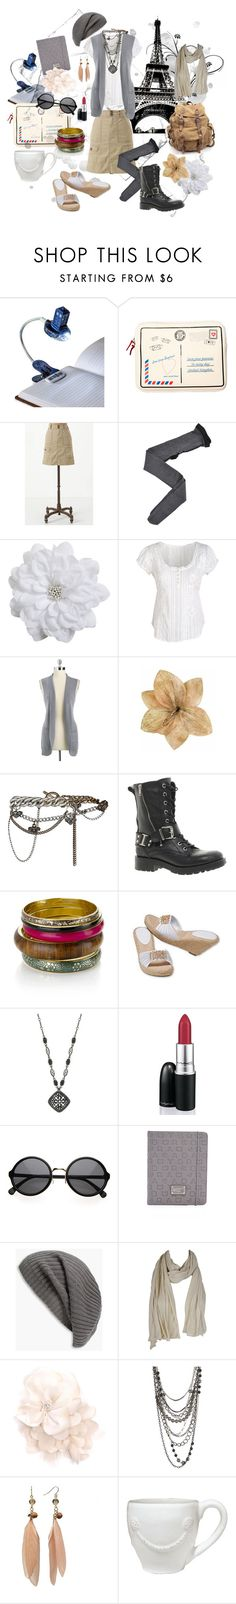 """""""paris"""" by jenn510 ❤ liked on Polyvore featuring Pull&Bear, Fogal, Bardot, Lucille, Lord & Taylor, Clips, AllSaints, River Island, Monsoon and Coldwater Creek"""